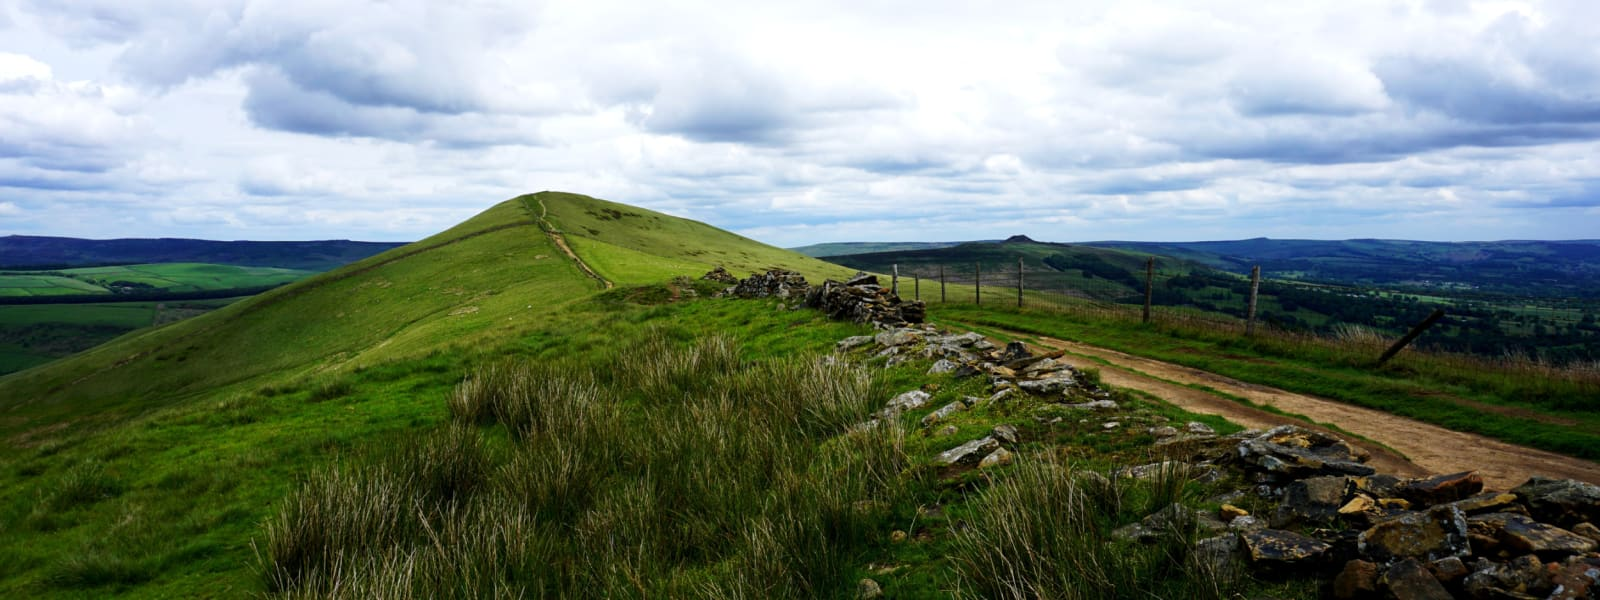 Edale Skyline Challenge private event - 19th September